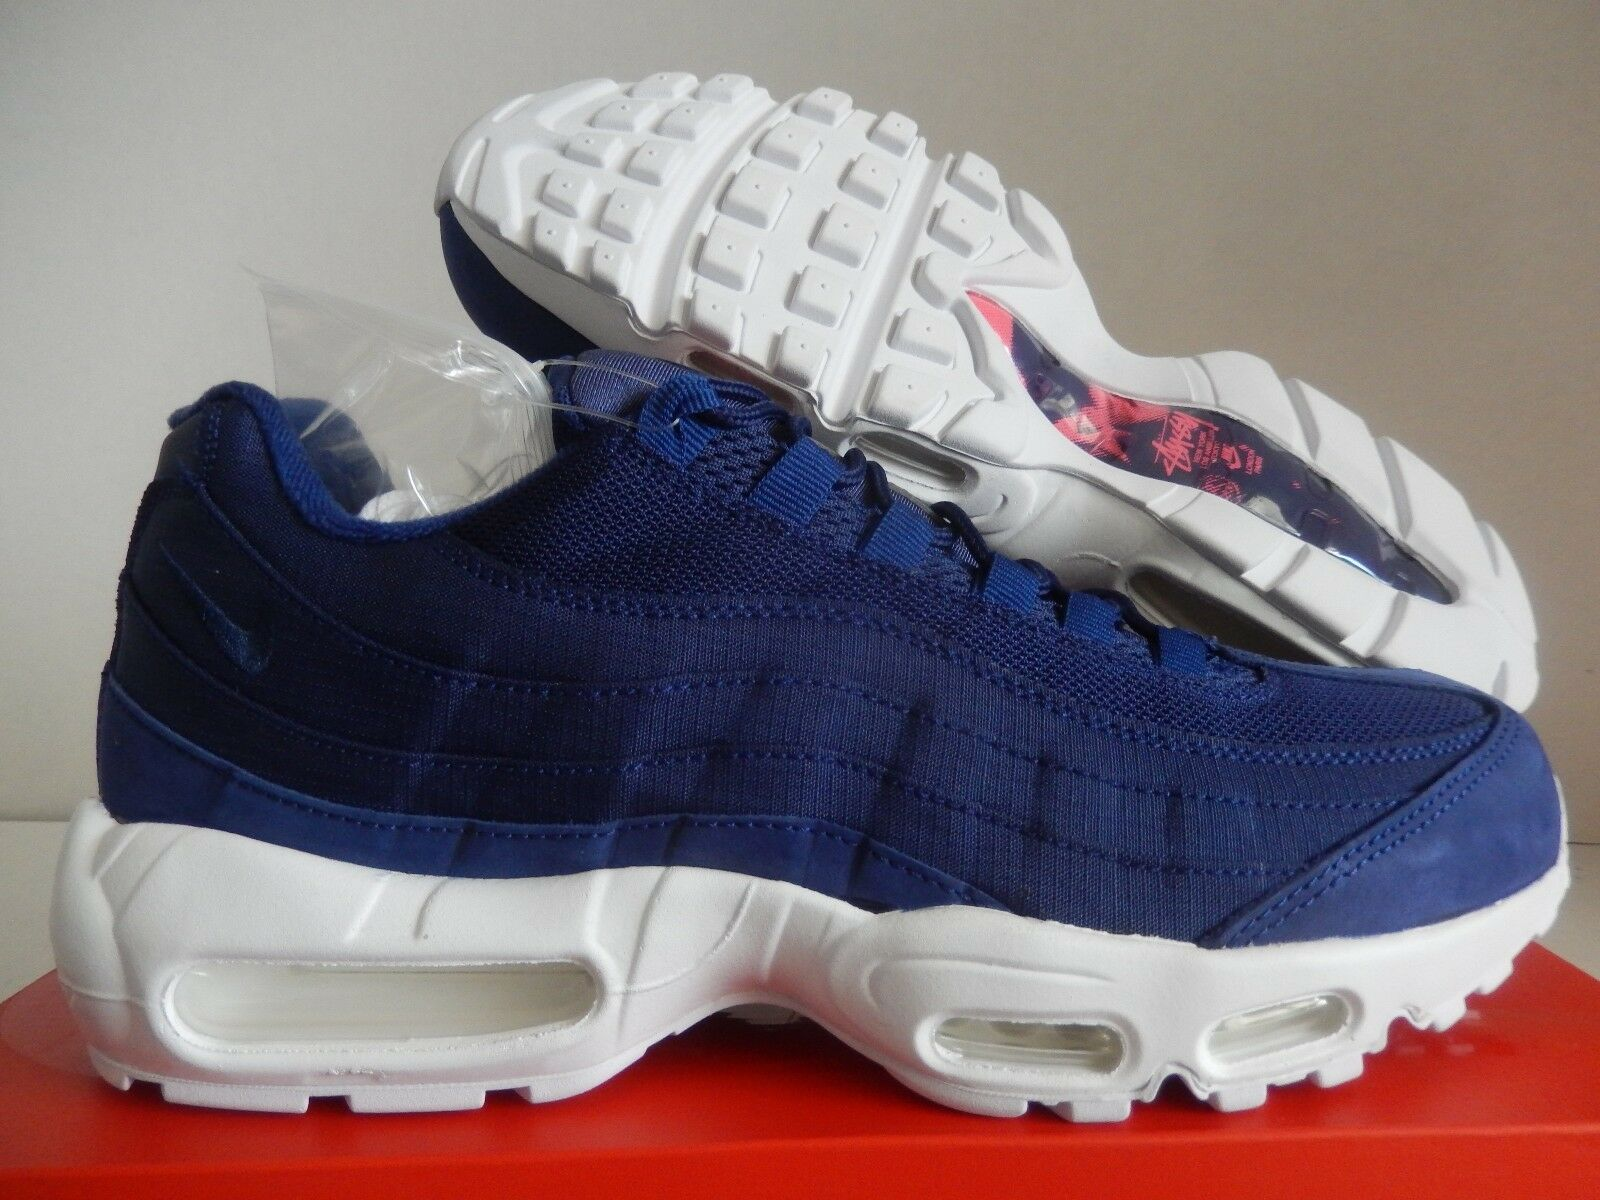 NIKE AIR LOYAL MAX 95 / STUSSY LOYAL AIR BLUE-LOYAL BLUE-WHITE SZ 11 RARE! [834668-441] 31e76b